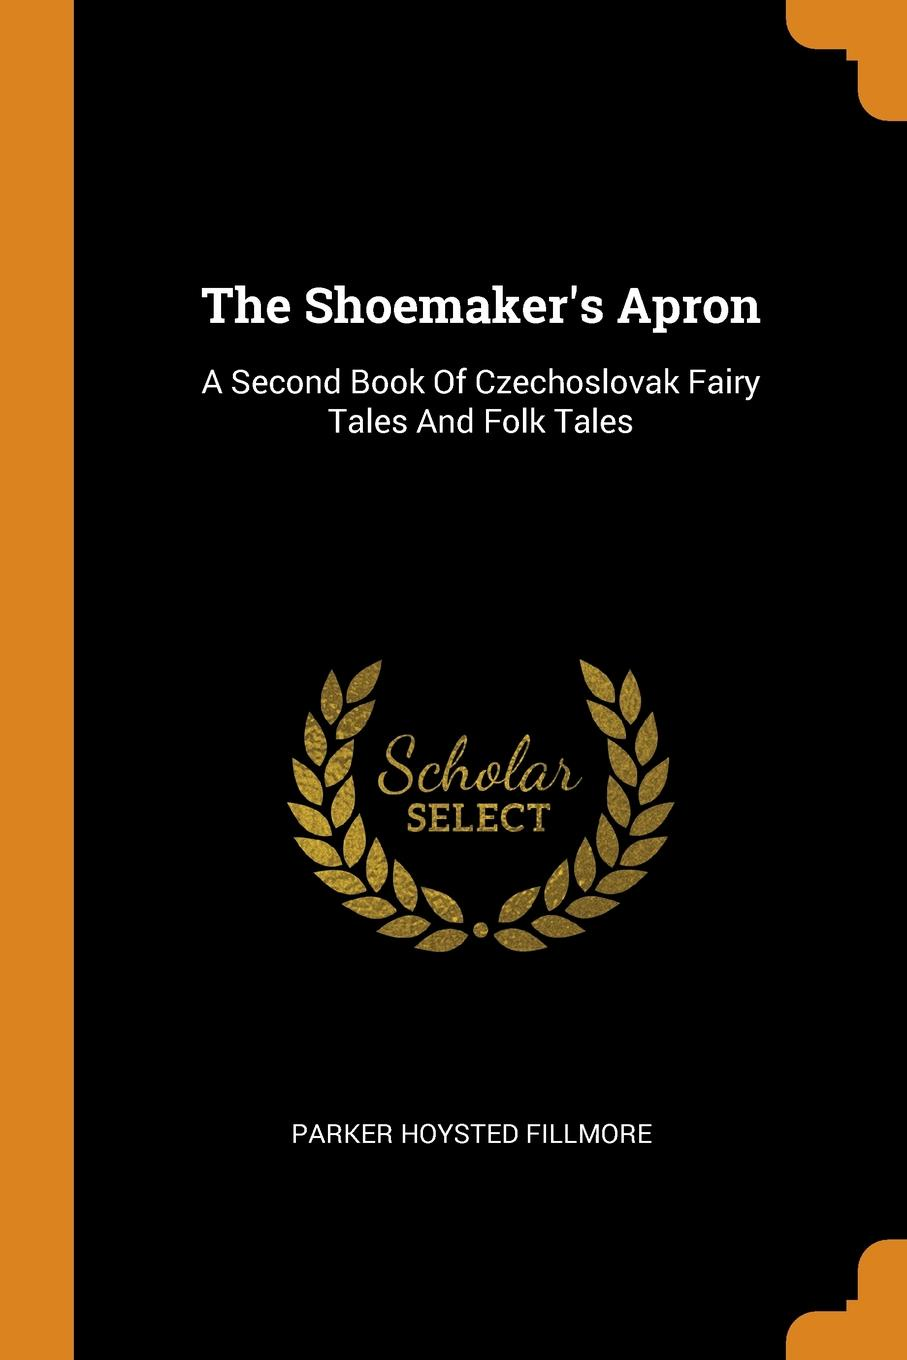 Parker Hoysted Fillmore The Shoemaker.s Apron. A Second Book Of Czechoslovak Fairy Tales And Folk Tales